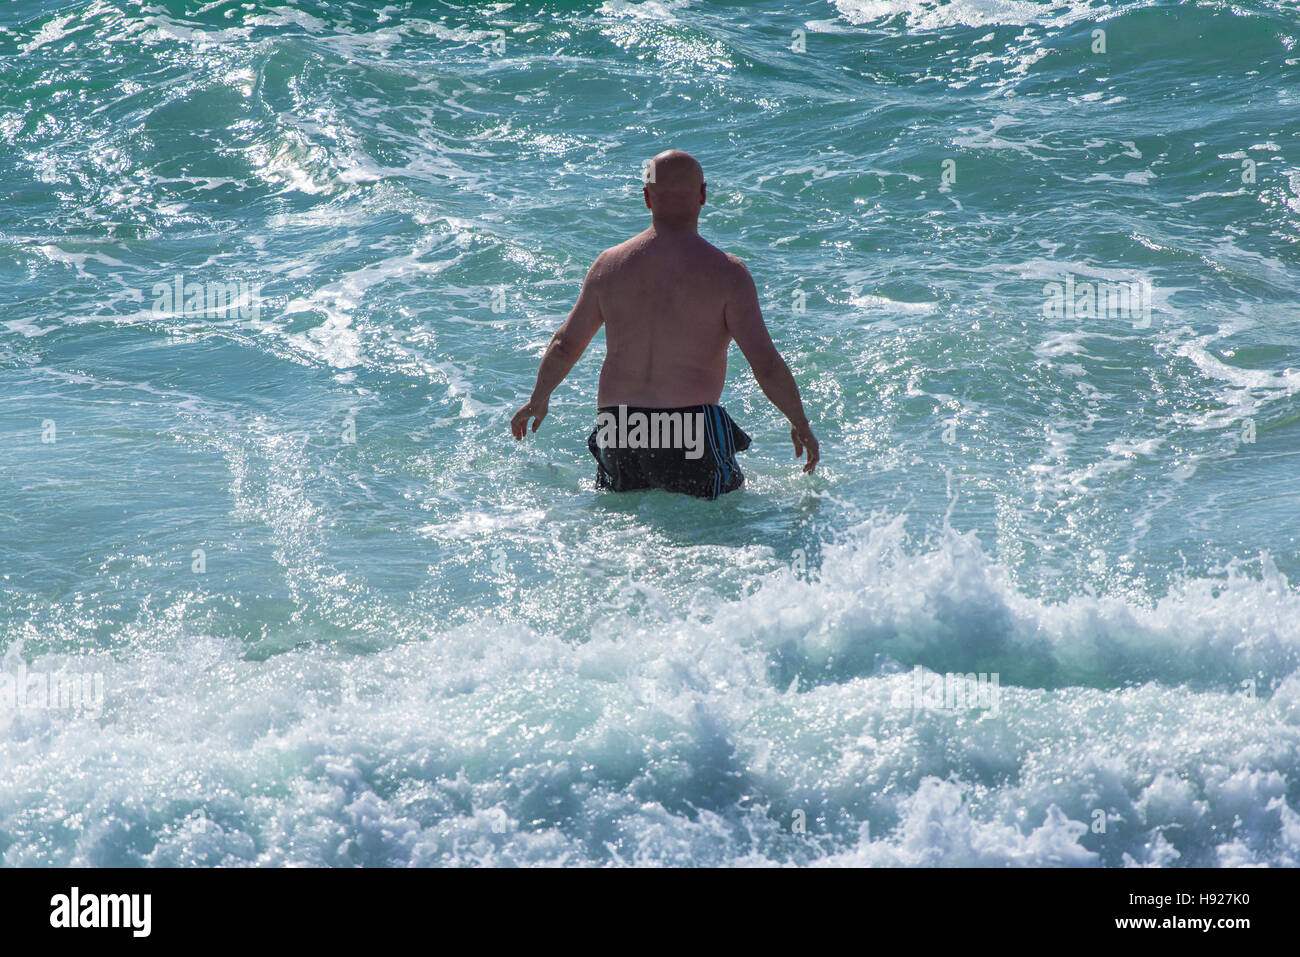 A holidaymaker cooling off in the sea at Fistral Beach in Newquay in Cornwall. - Stock Image